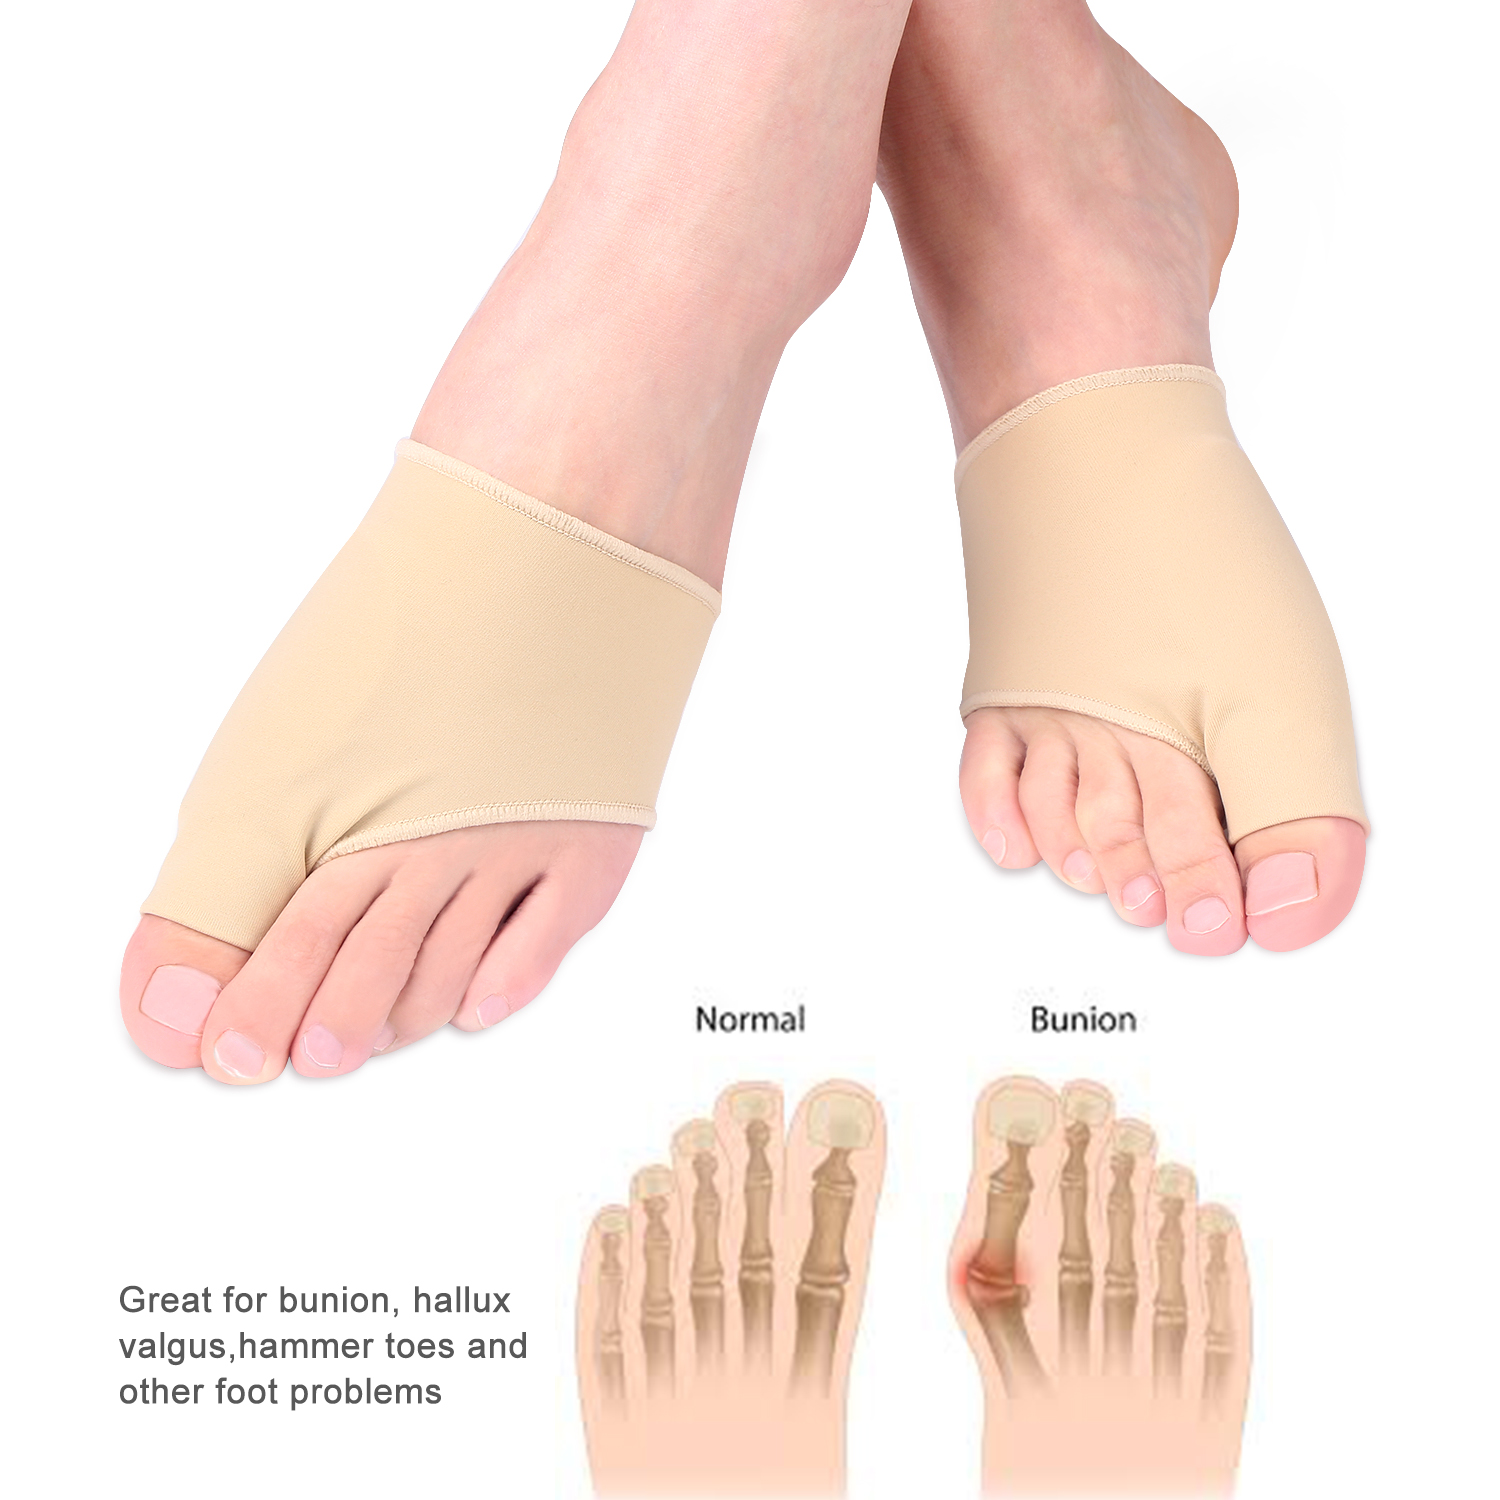 Yosoo 1 Pair Bunion Corrector Silicone Bunion Pads Foot Guard Relief Kit Treat Pain for Hallux Valgus Protector Sleeves